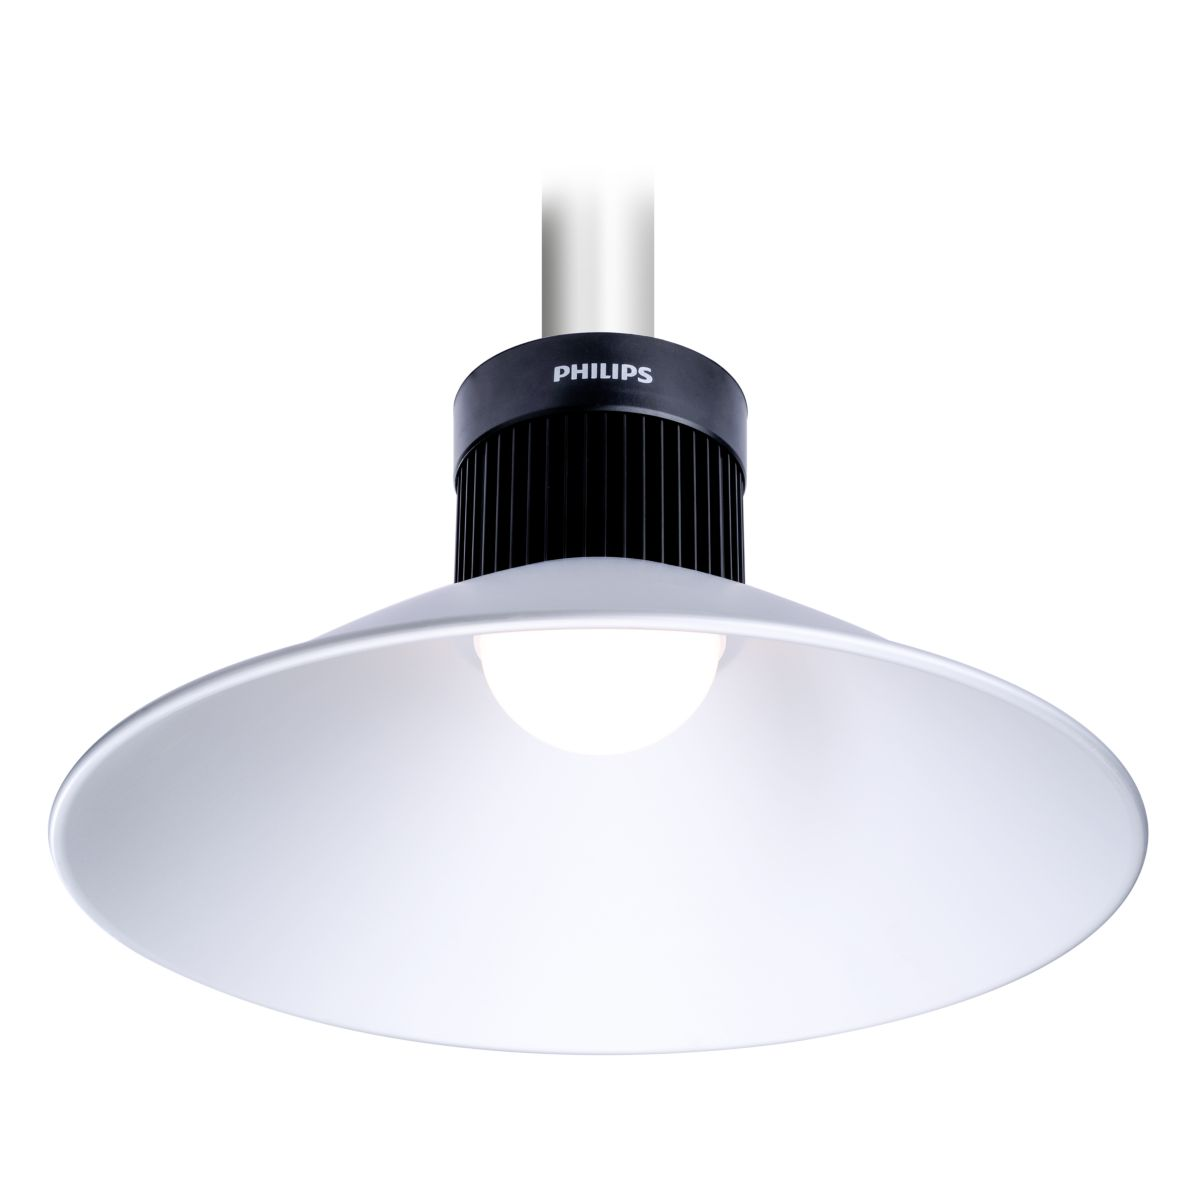 Led Low Bay Lights Price Essential Smartbright Lowbay Low-bay - Philips Lighting